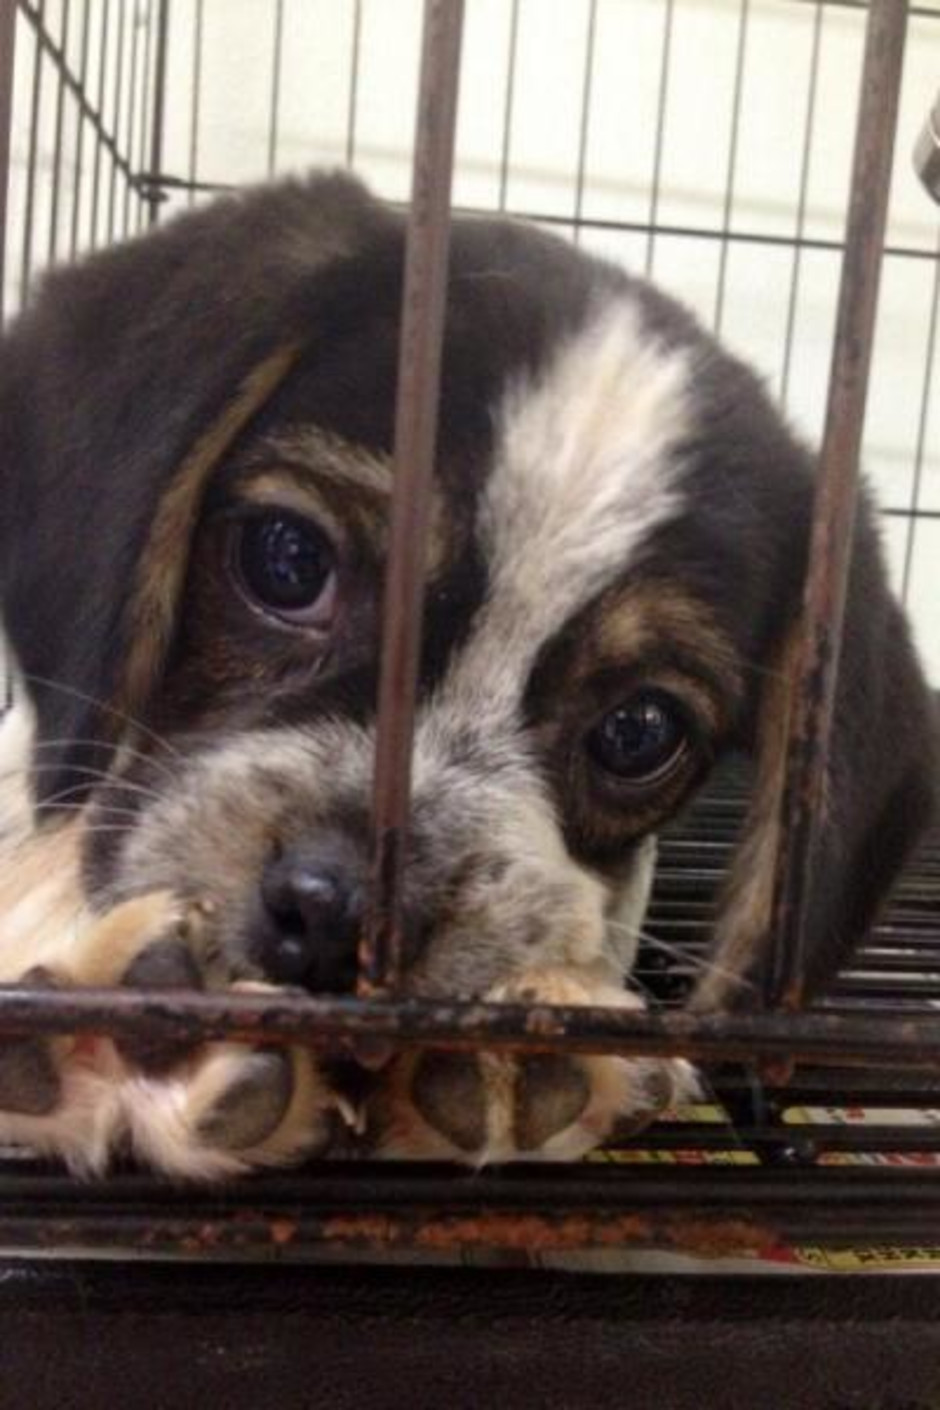 Puppy Eyes in the cage